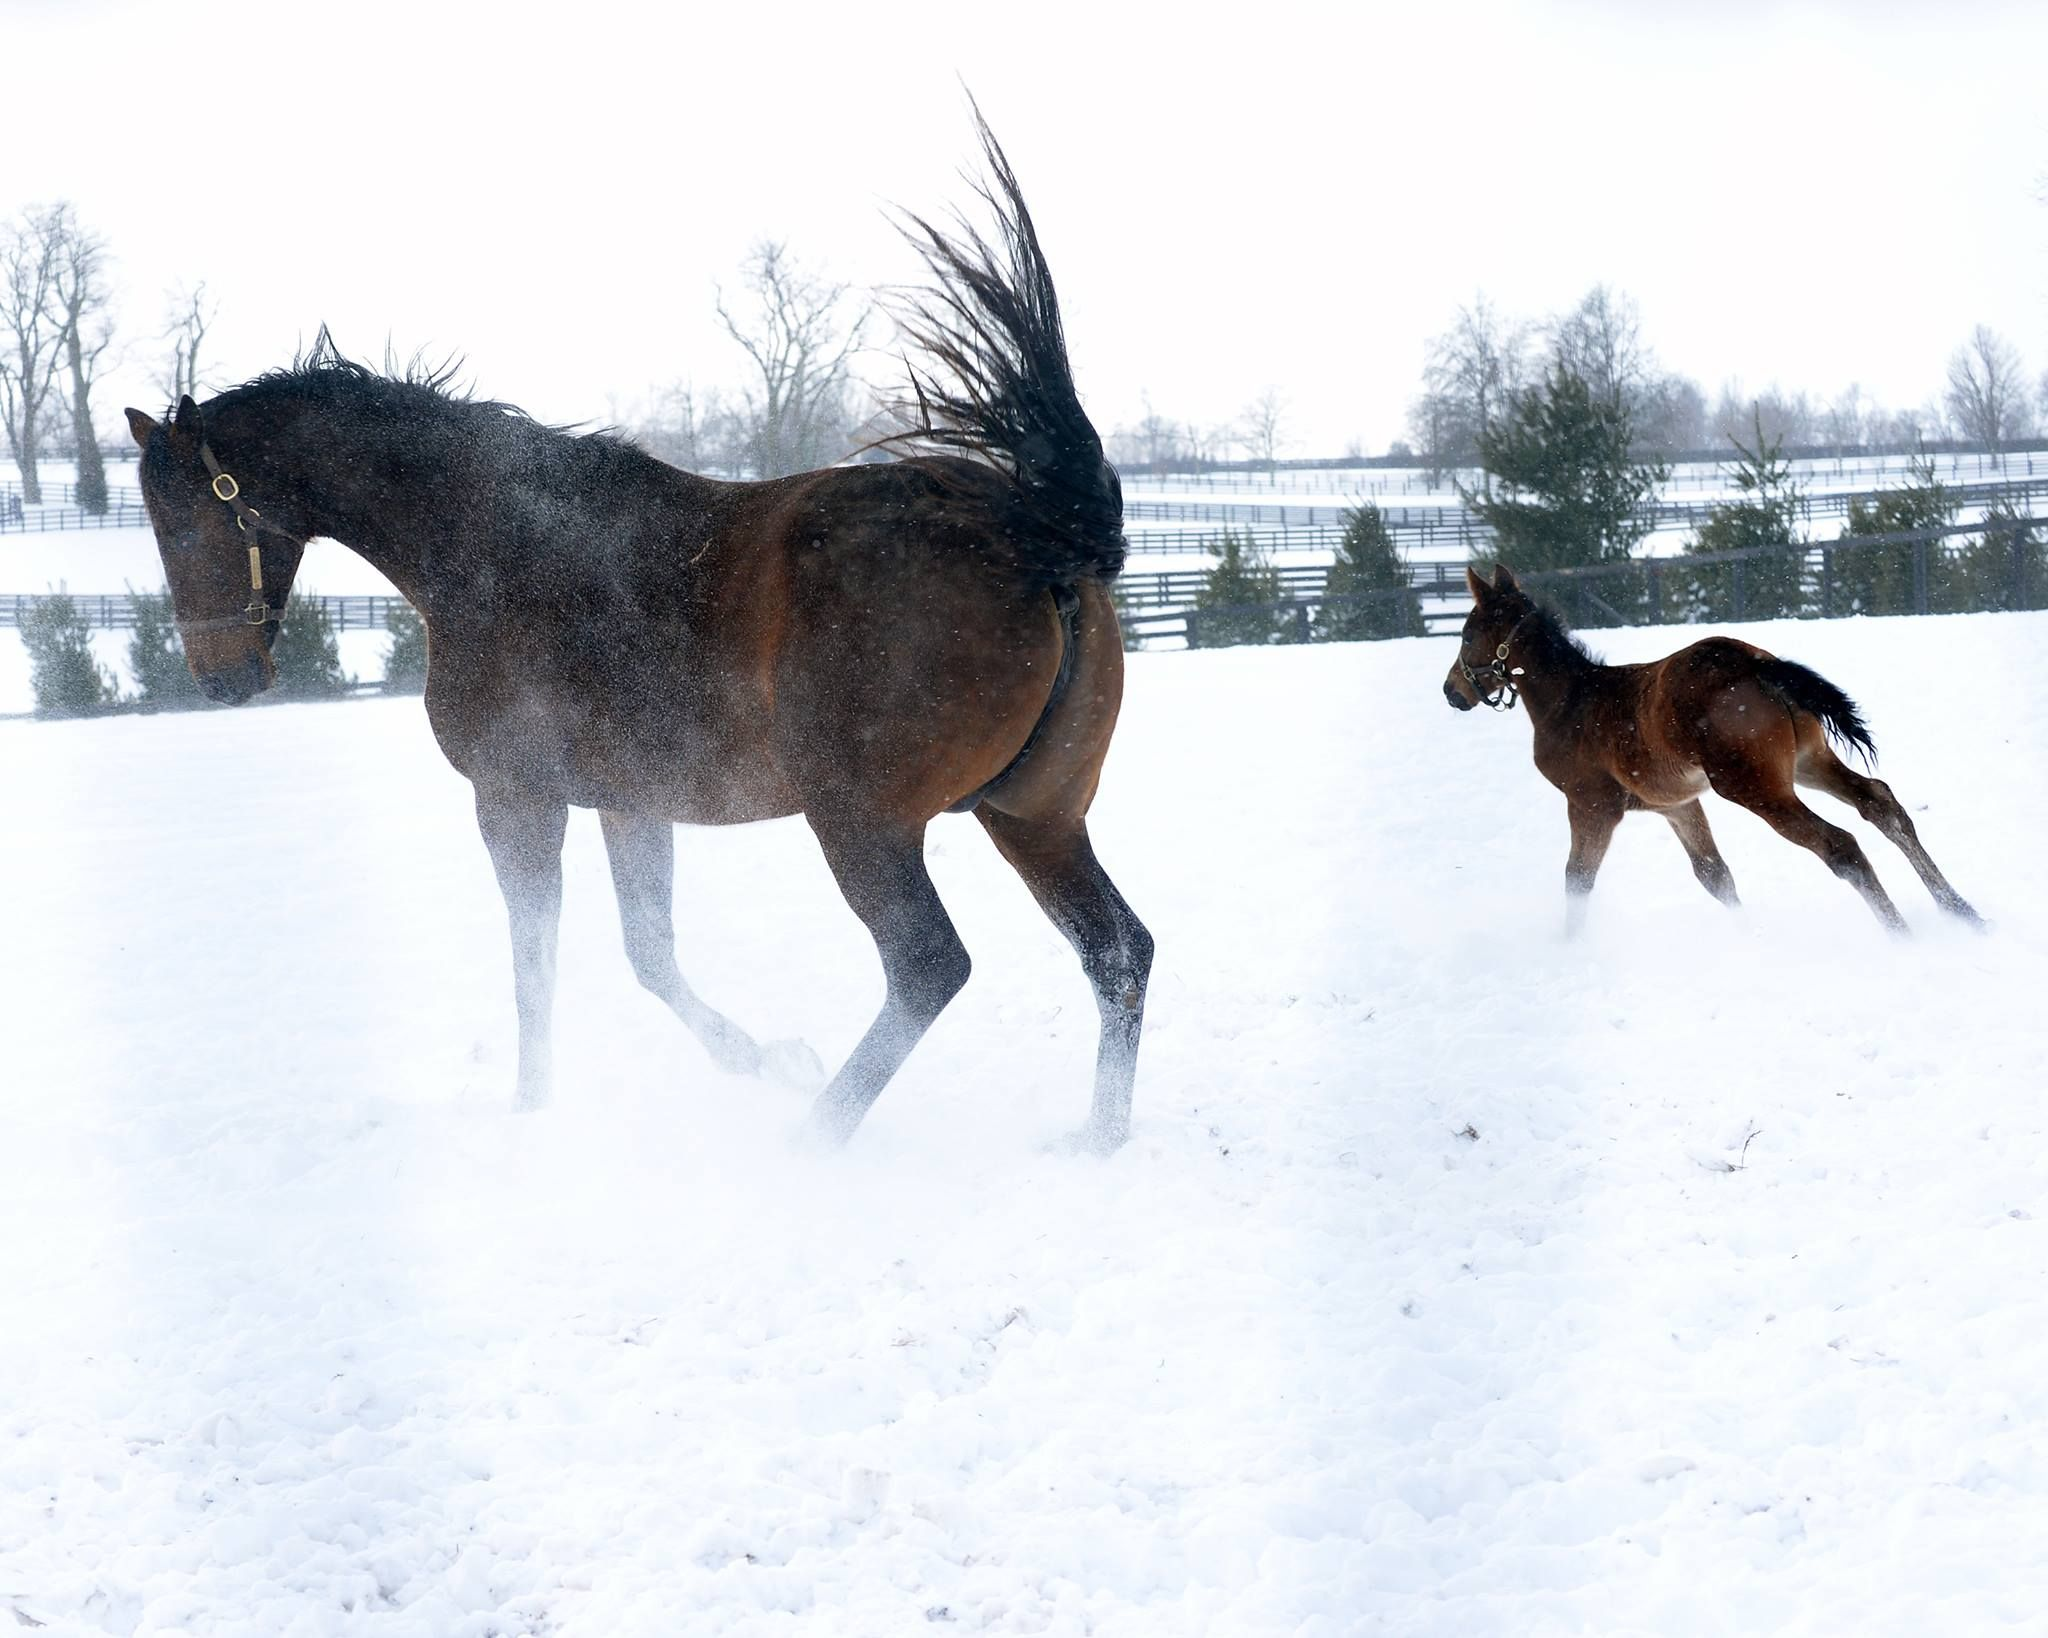 2015 colt by Bellamy Road and his dam, Colona